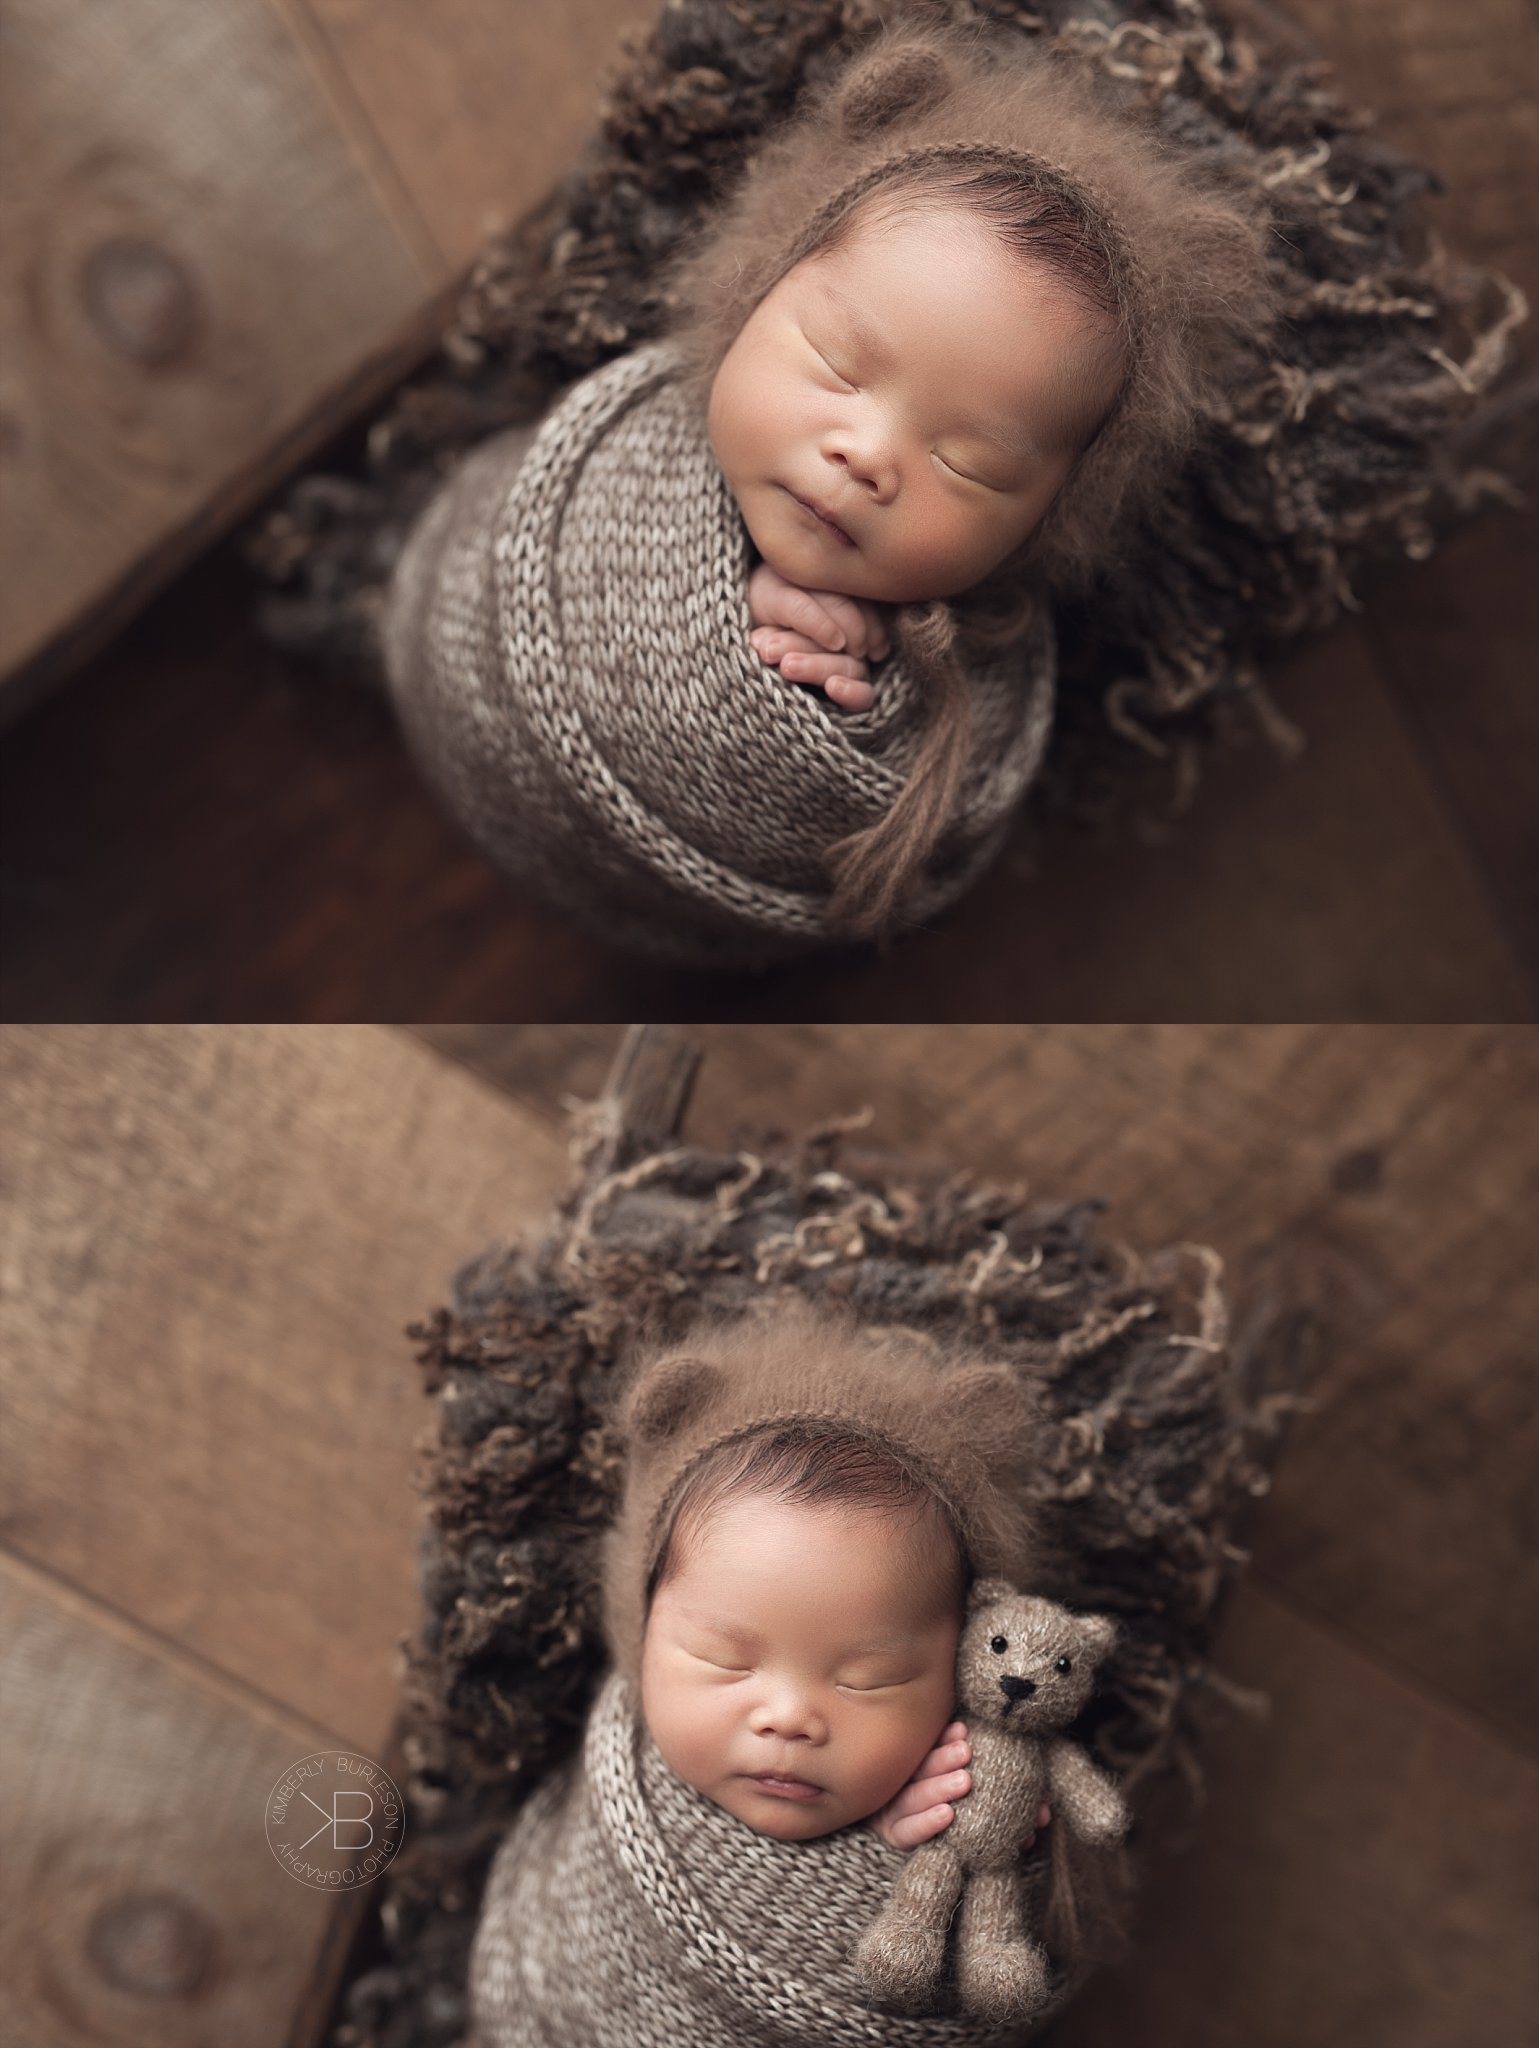 Chubby Cheeks! Handsome Baby Boy Newborn Images